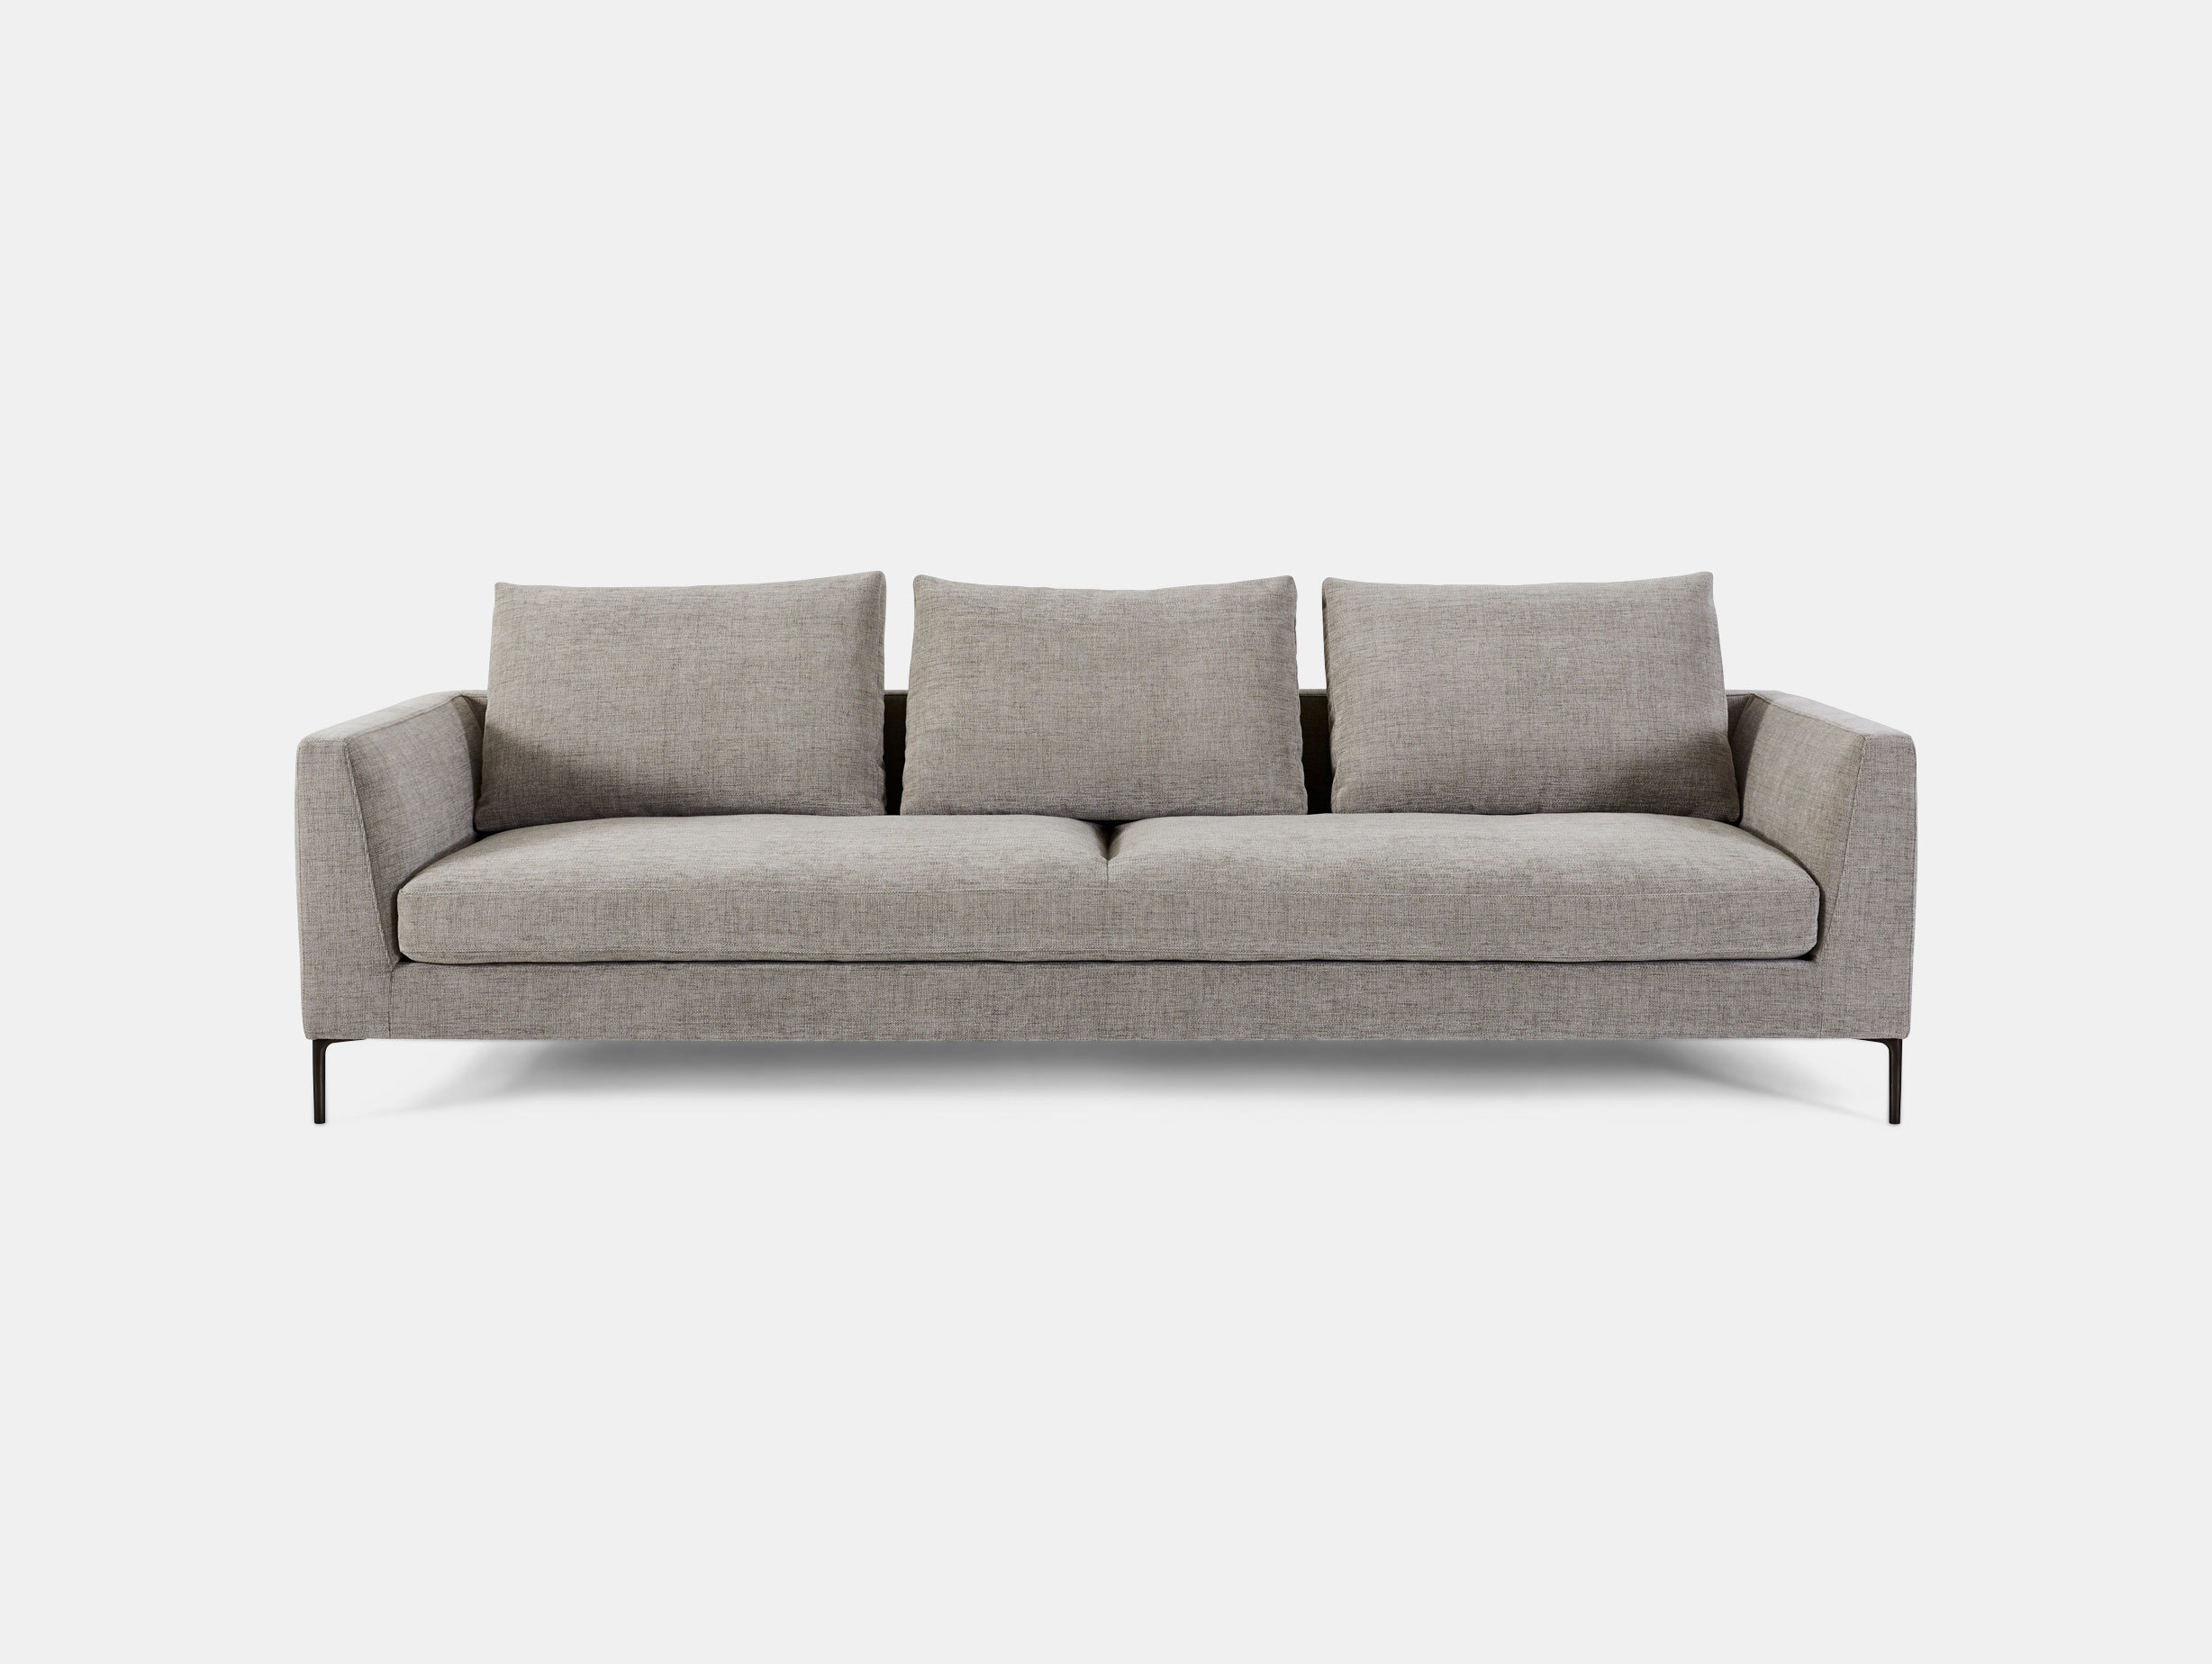 Montis Daley Sofa 4